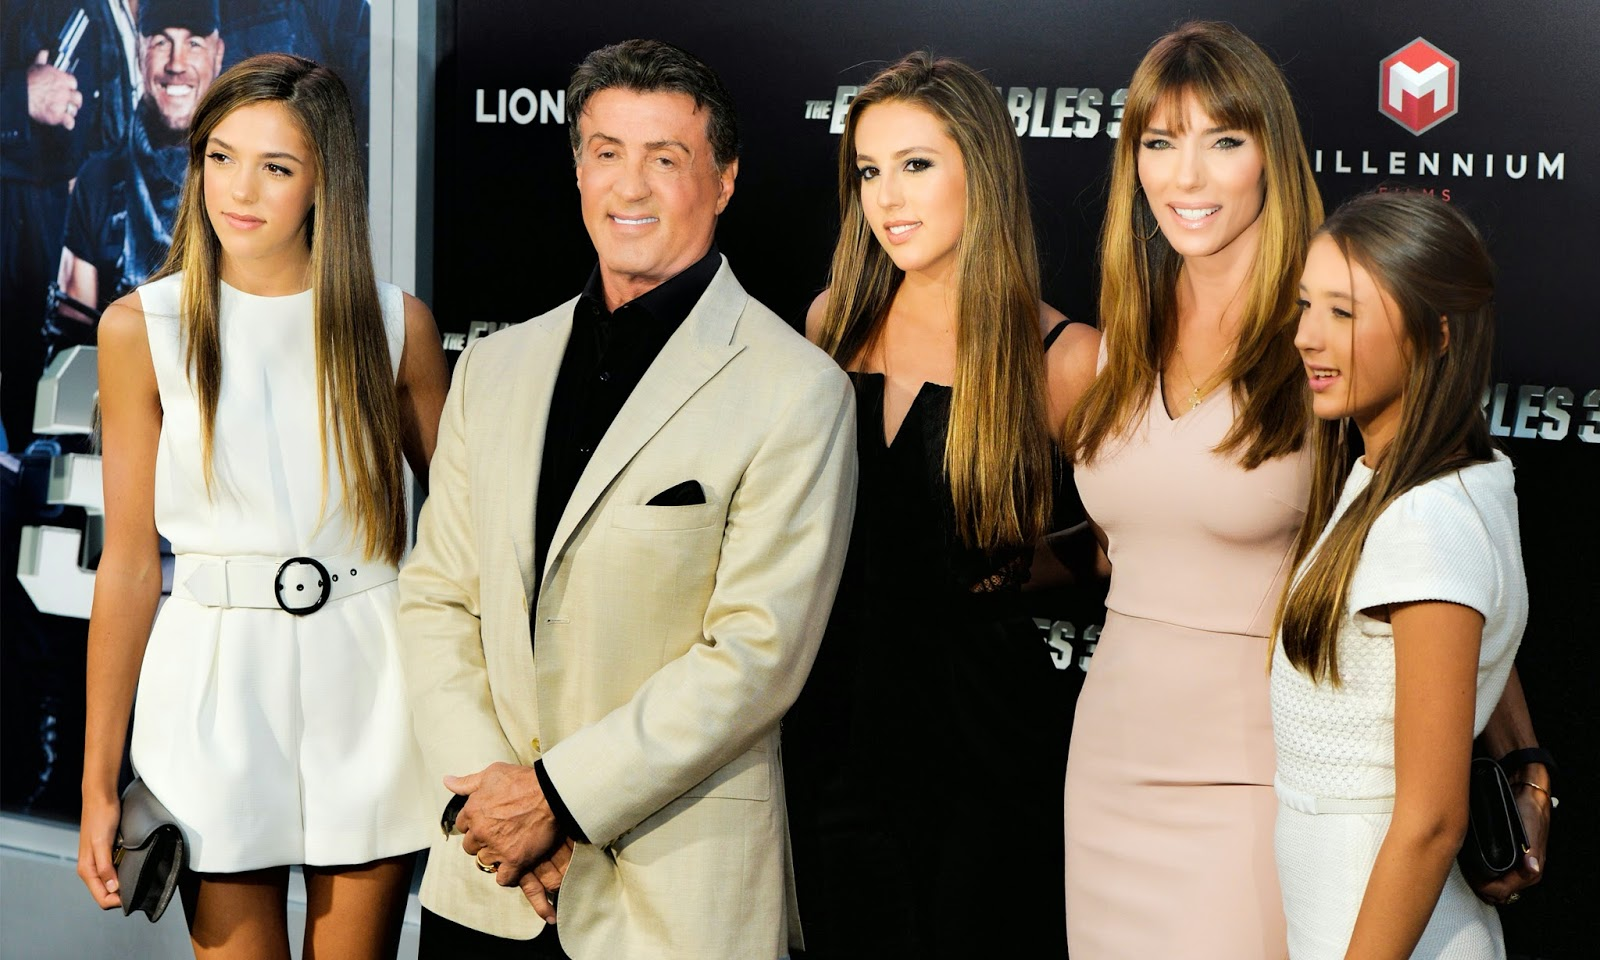 Sylvester Stallone with girls Wallpapers